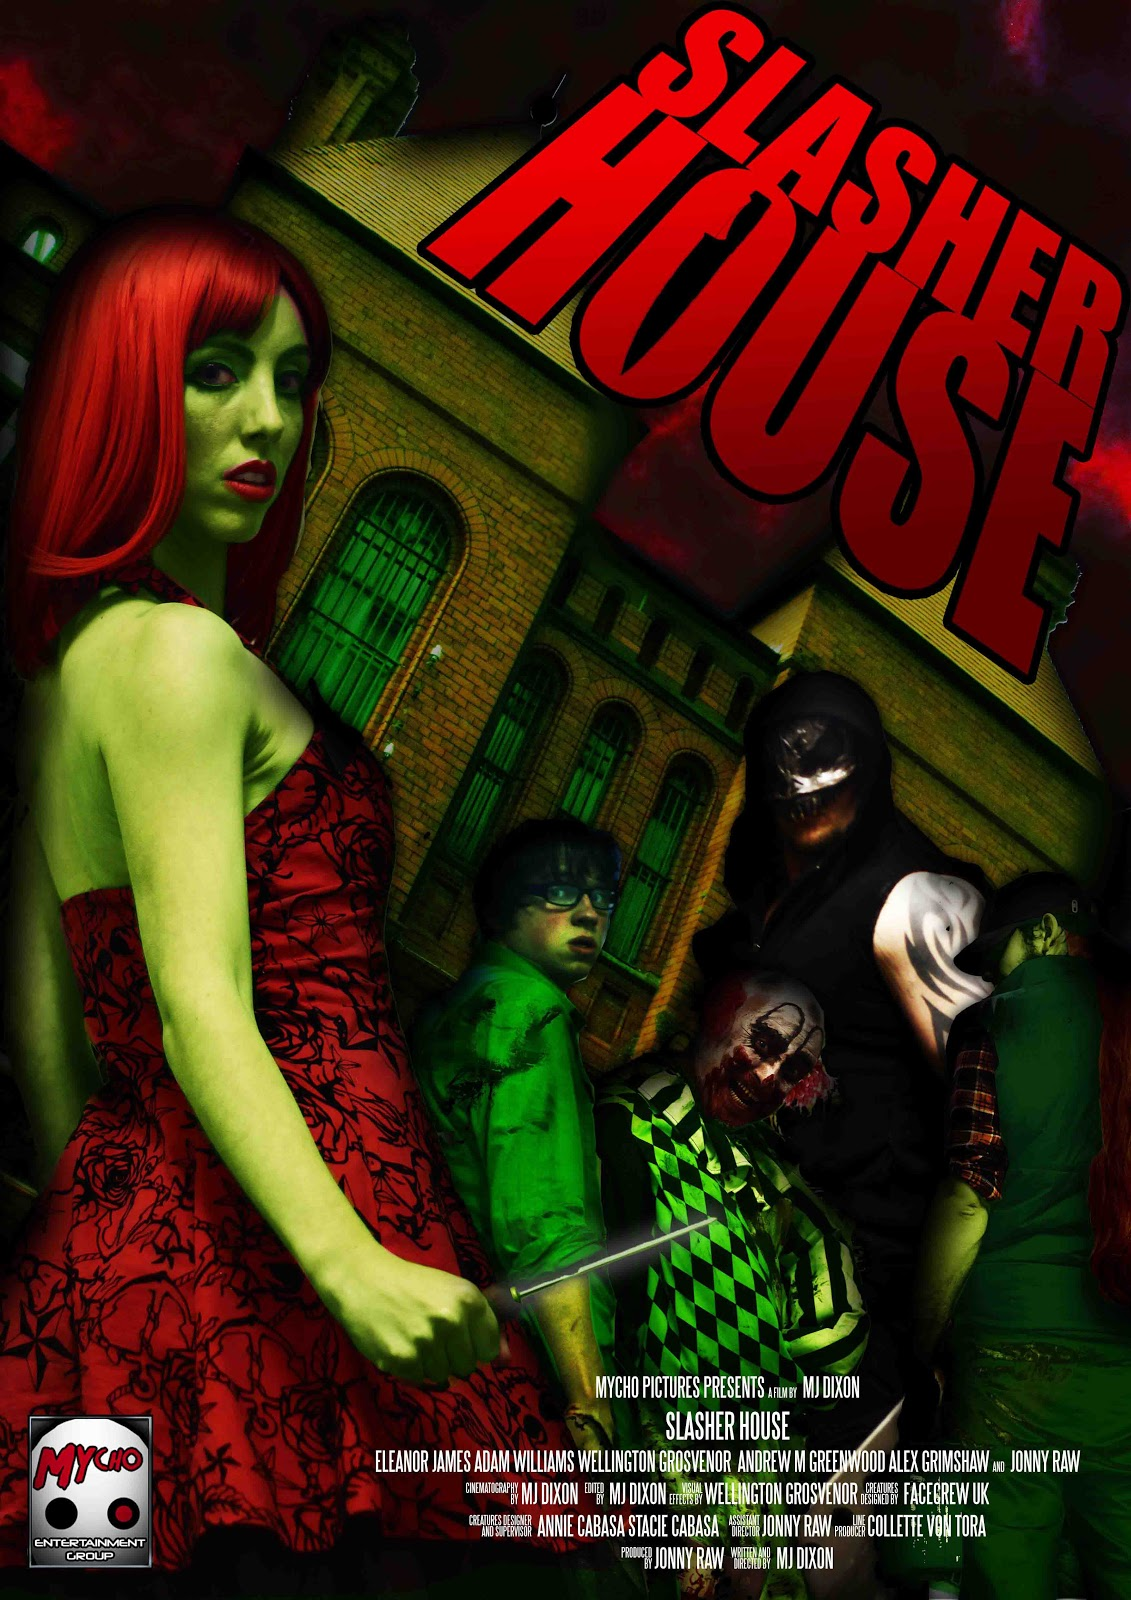 Watch Eleanor James Slasher House - 2012 video